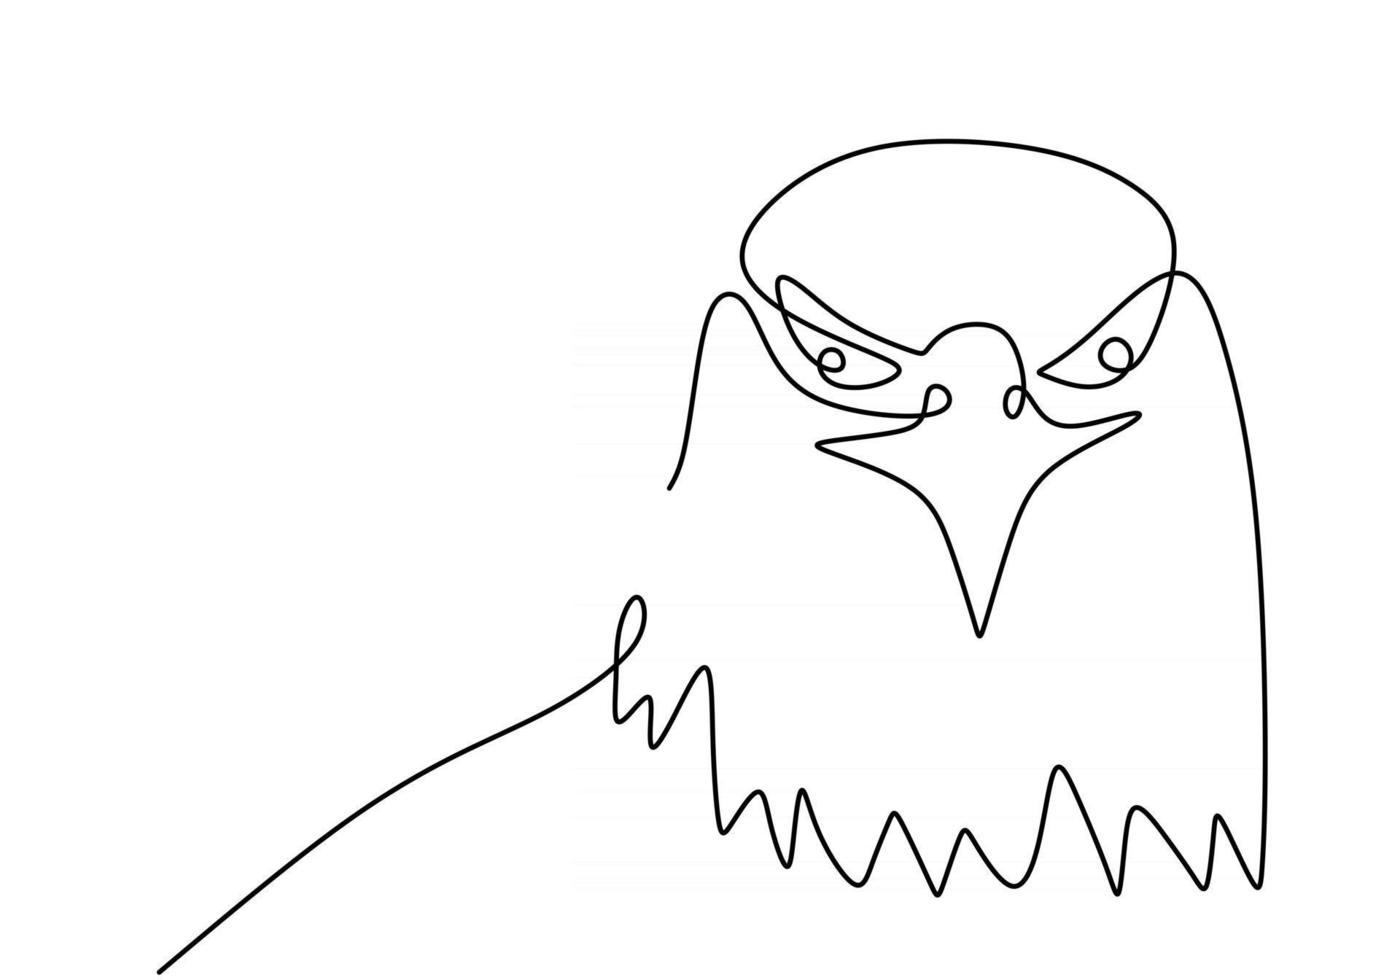 Continuous one line drawing of eagle vector